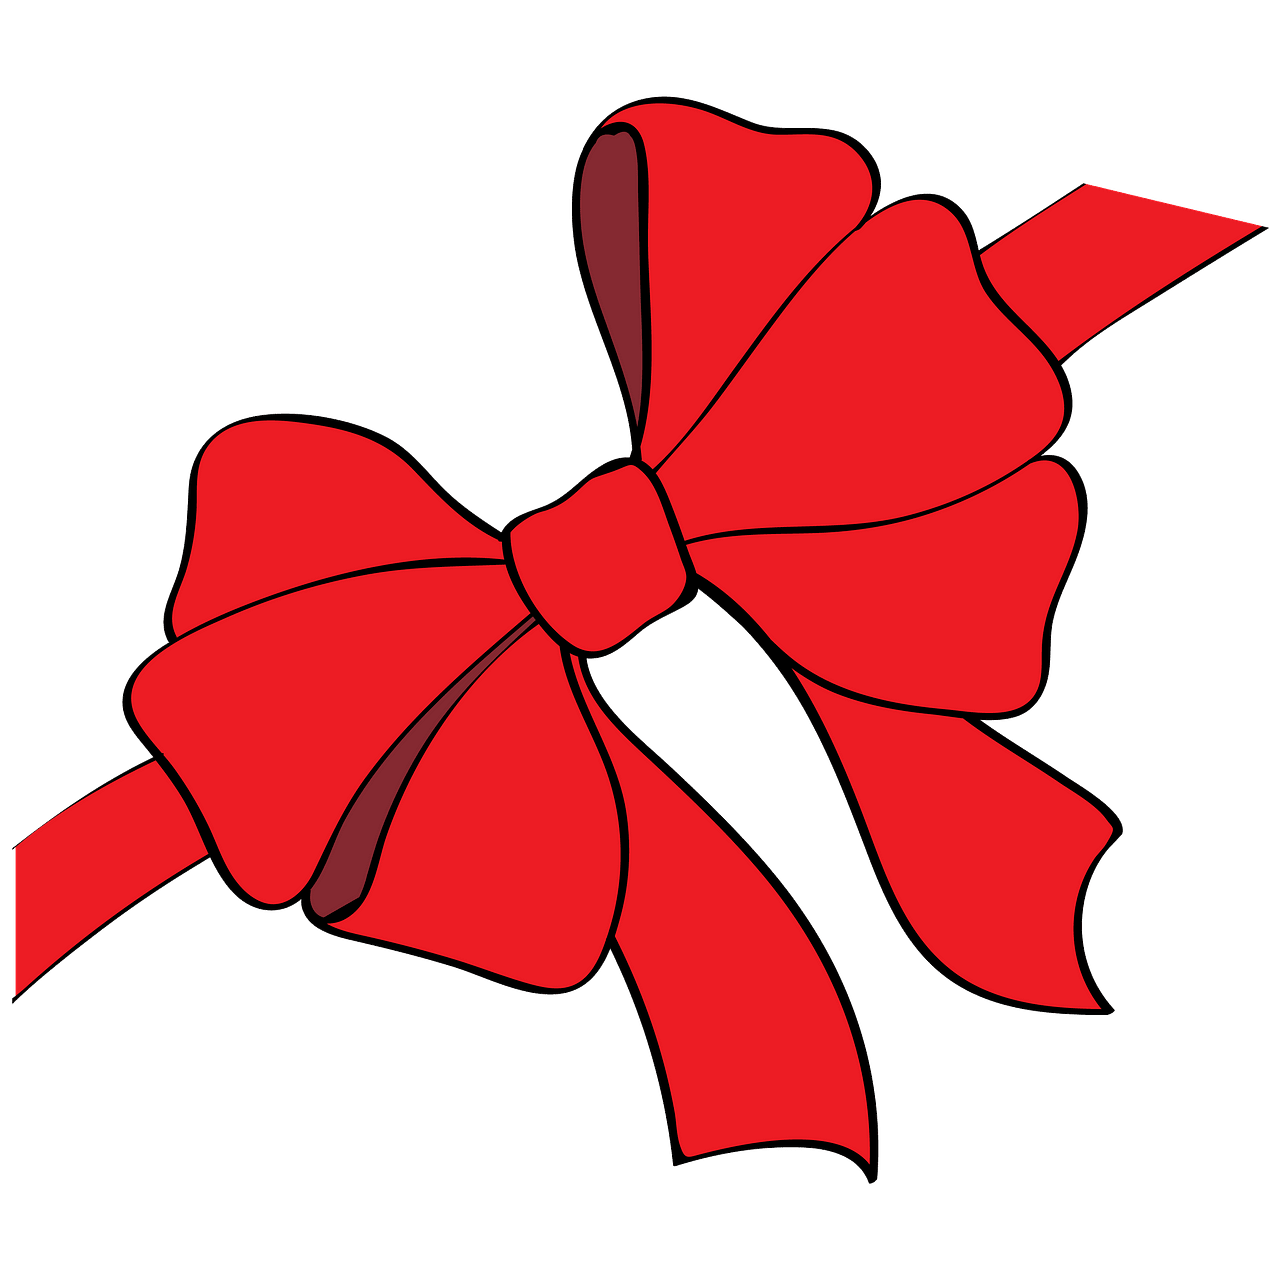 Red Christmas Bow clipart. Free download..